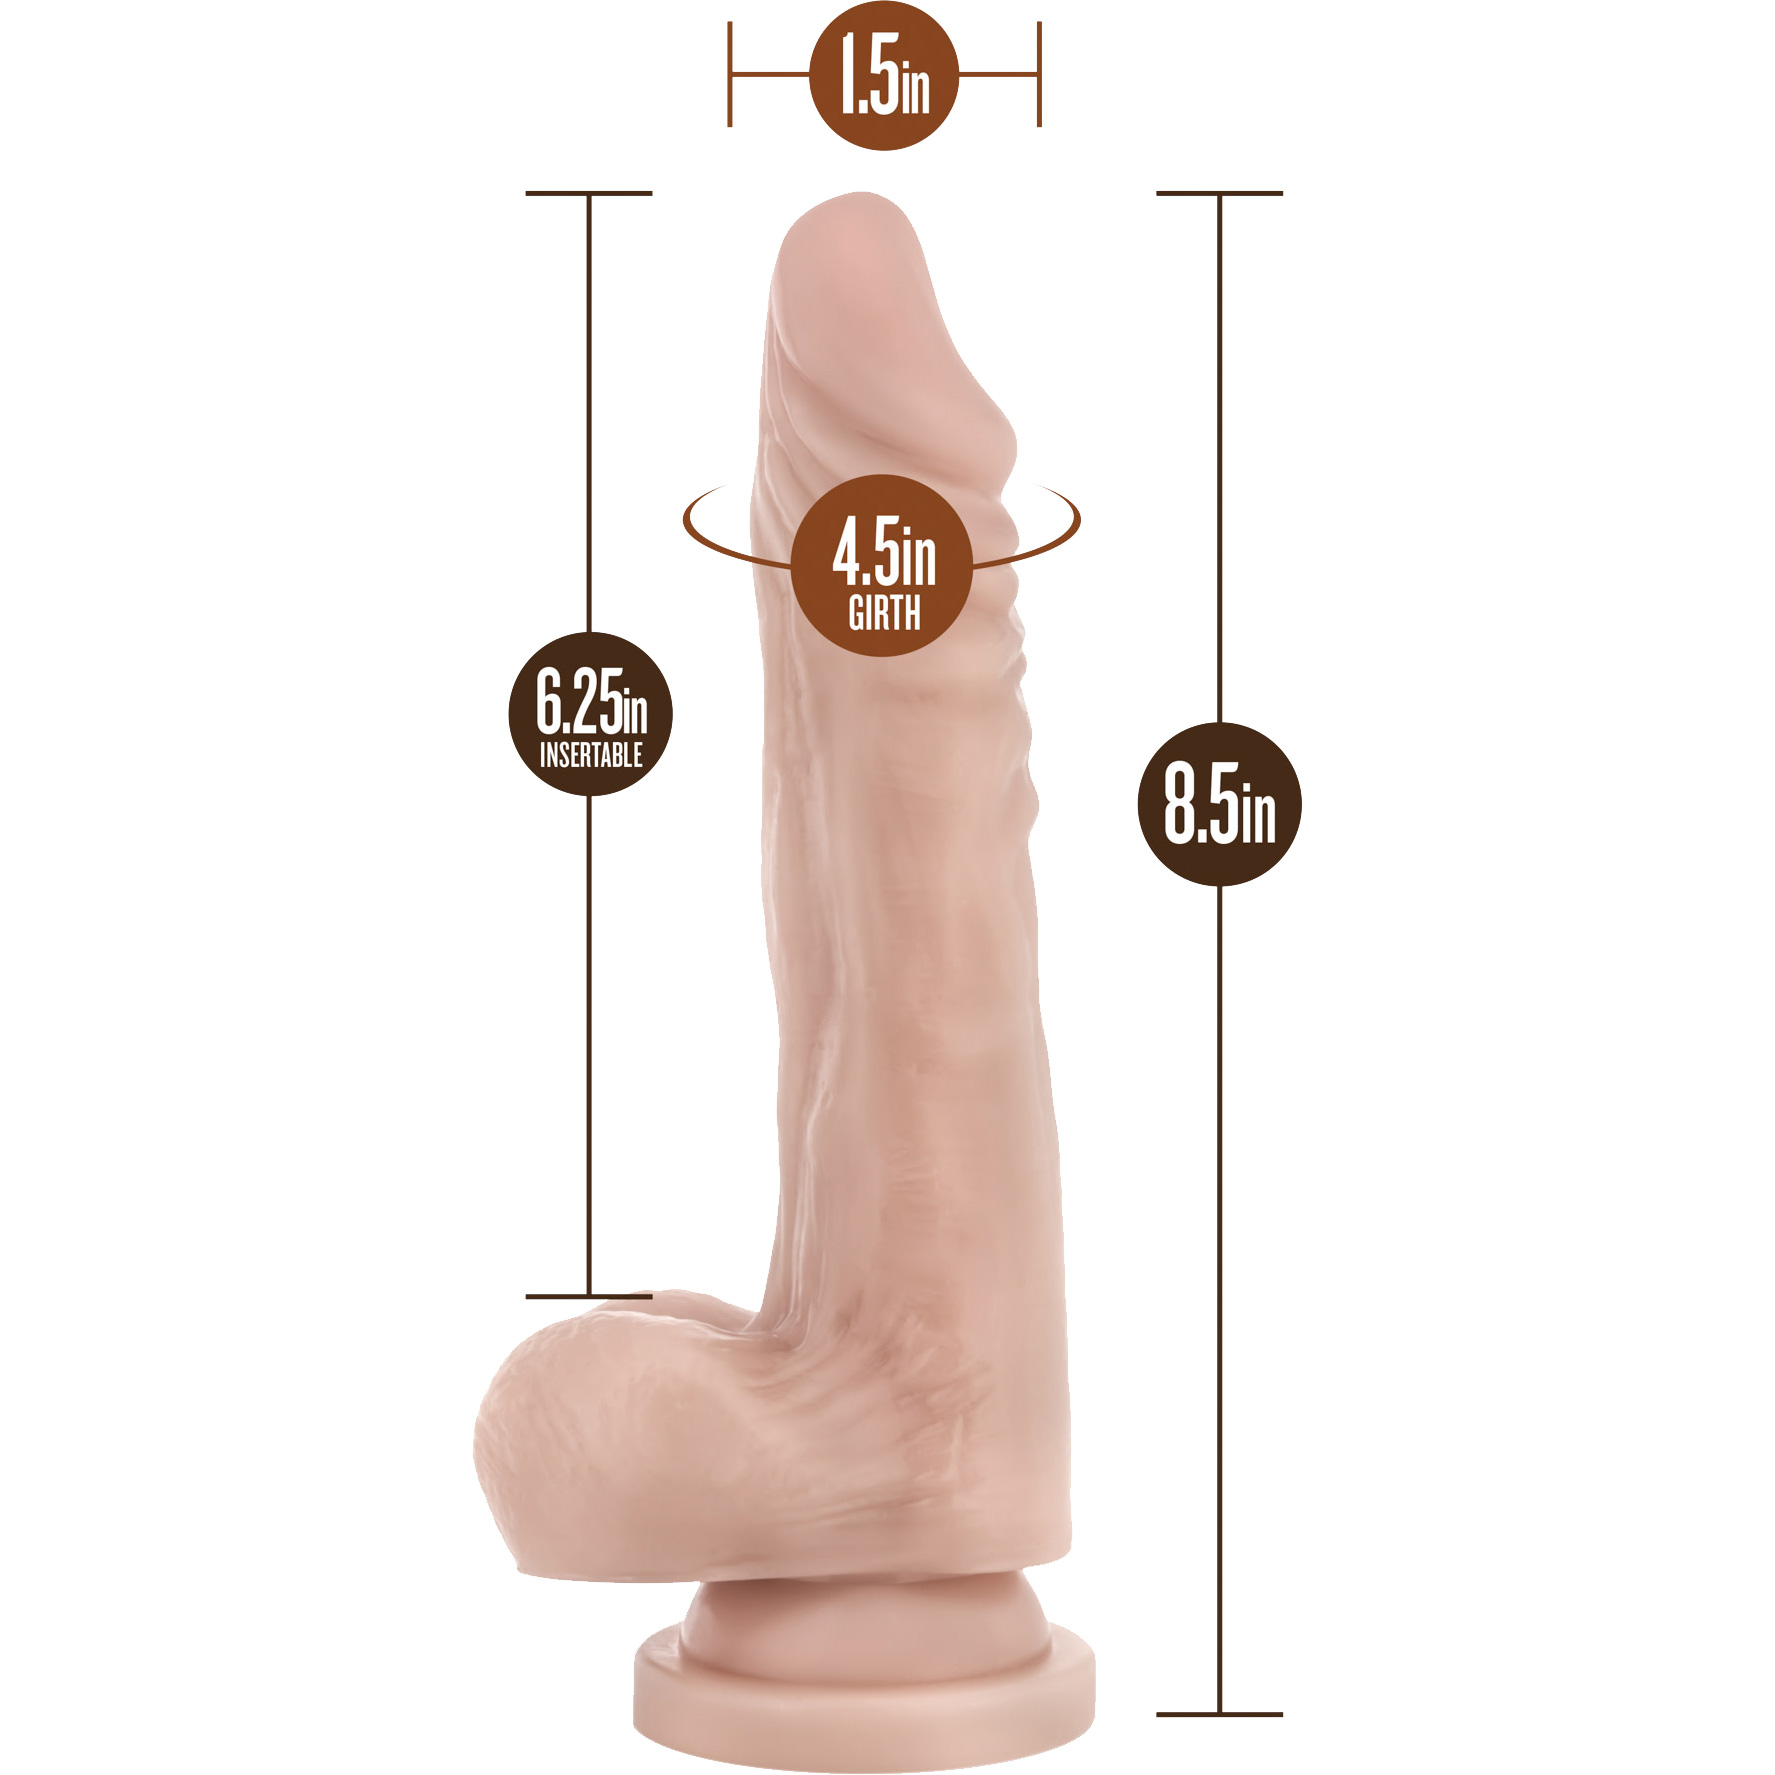 Dr. Skin Stud Muffin Realistic Dildo With Suction Cup by Blush - Measurements